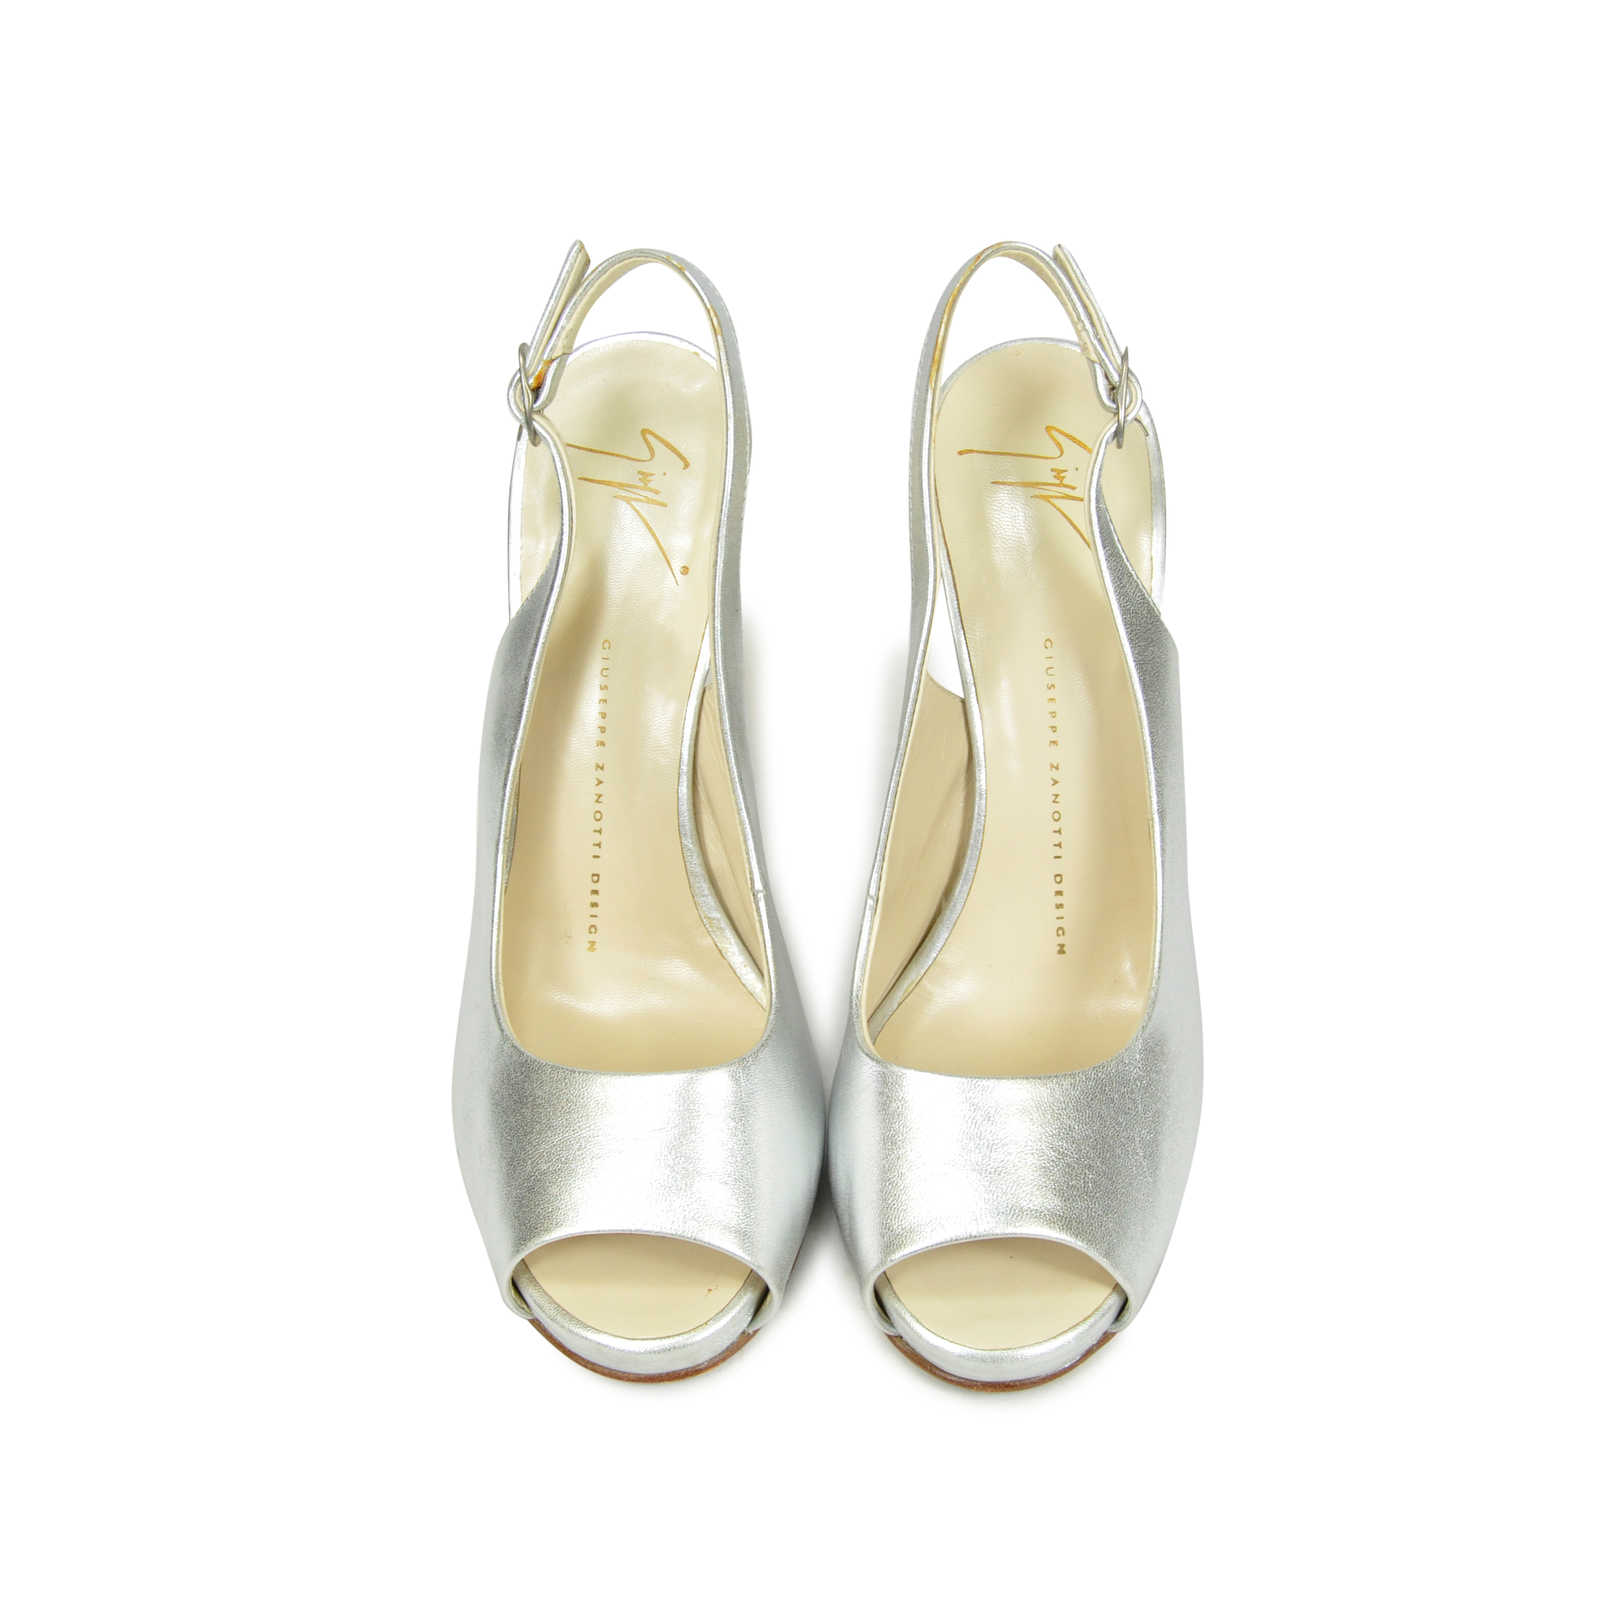 961af9fc3886 Authentic Second Hand Giuseppe Zanotti Mirror Wedges (PSS-097-00009) -  Thumbnail ...